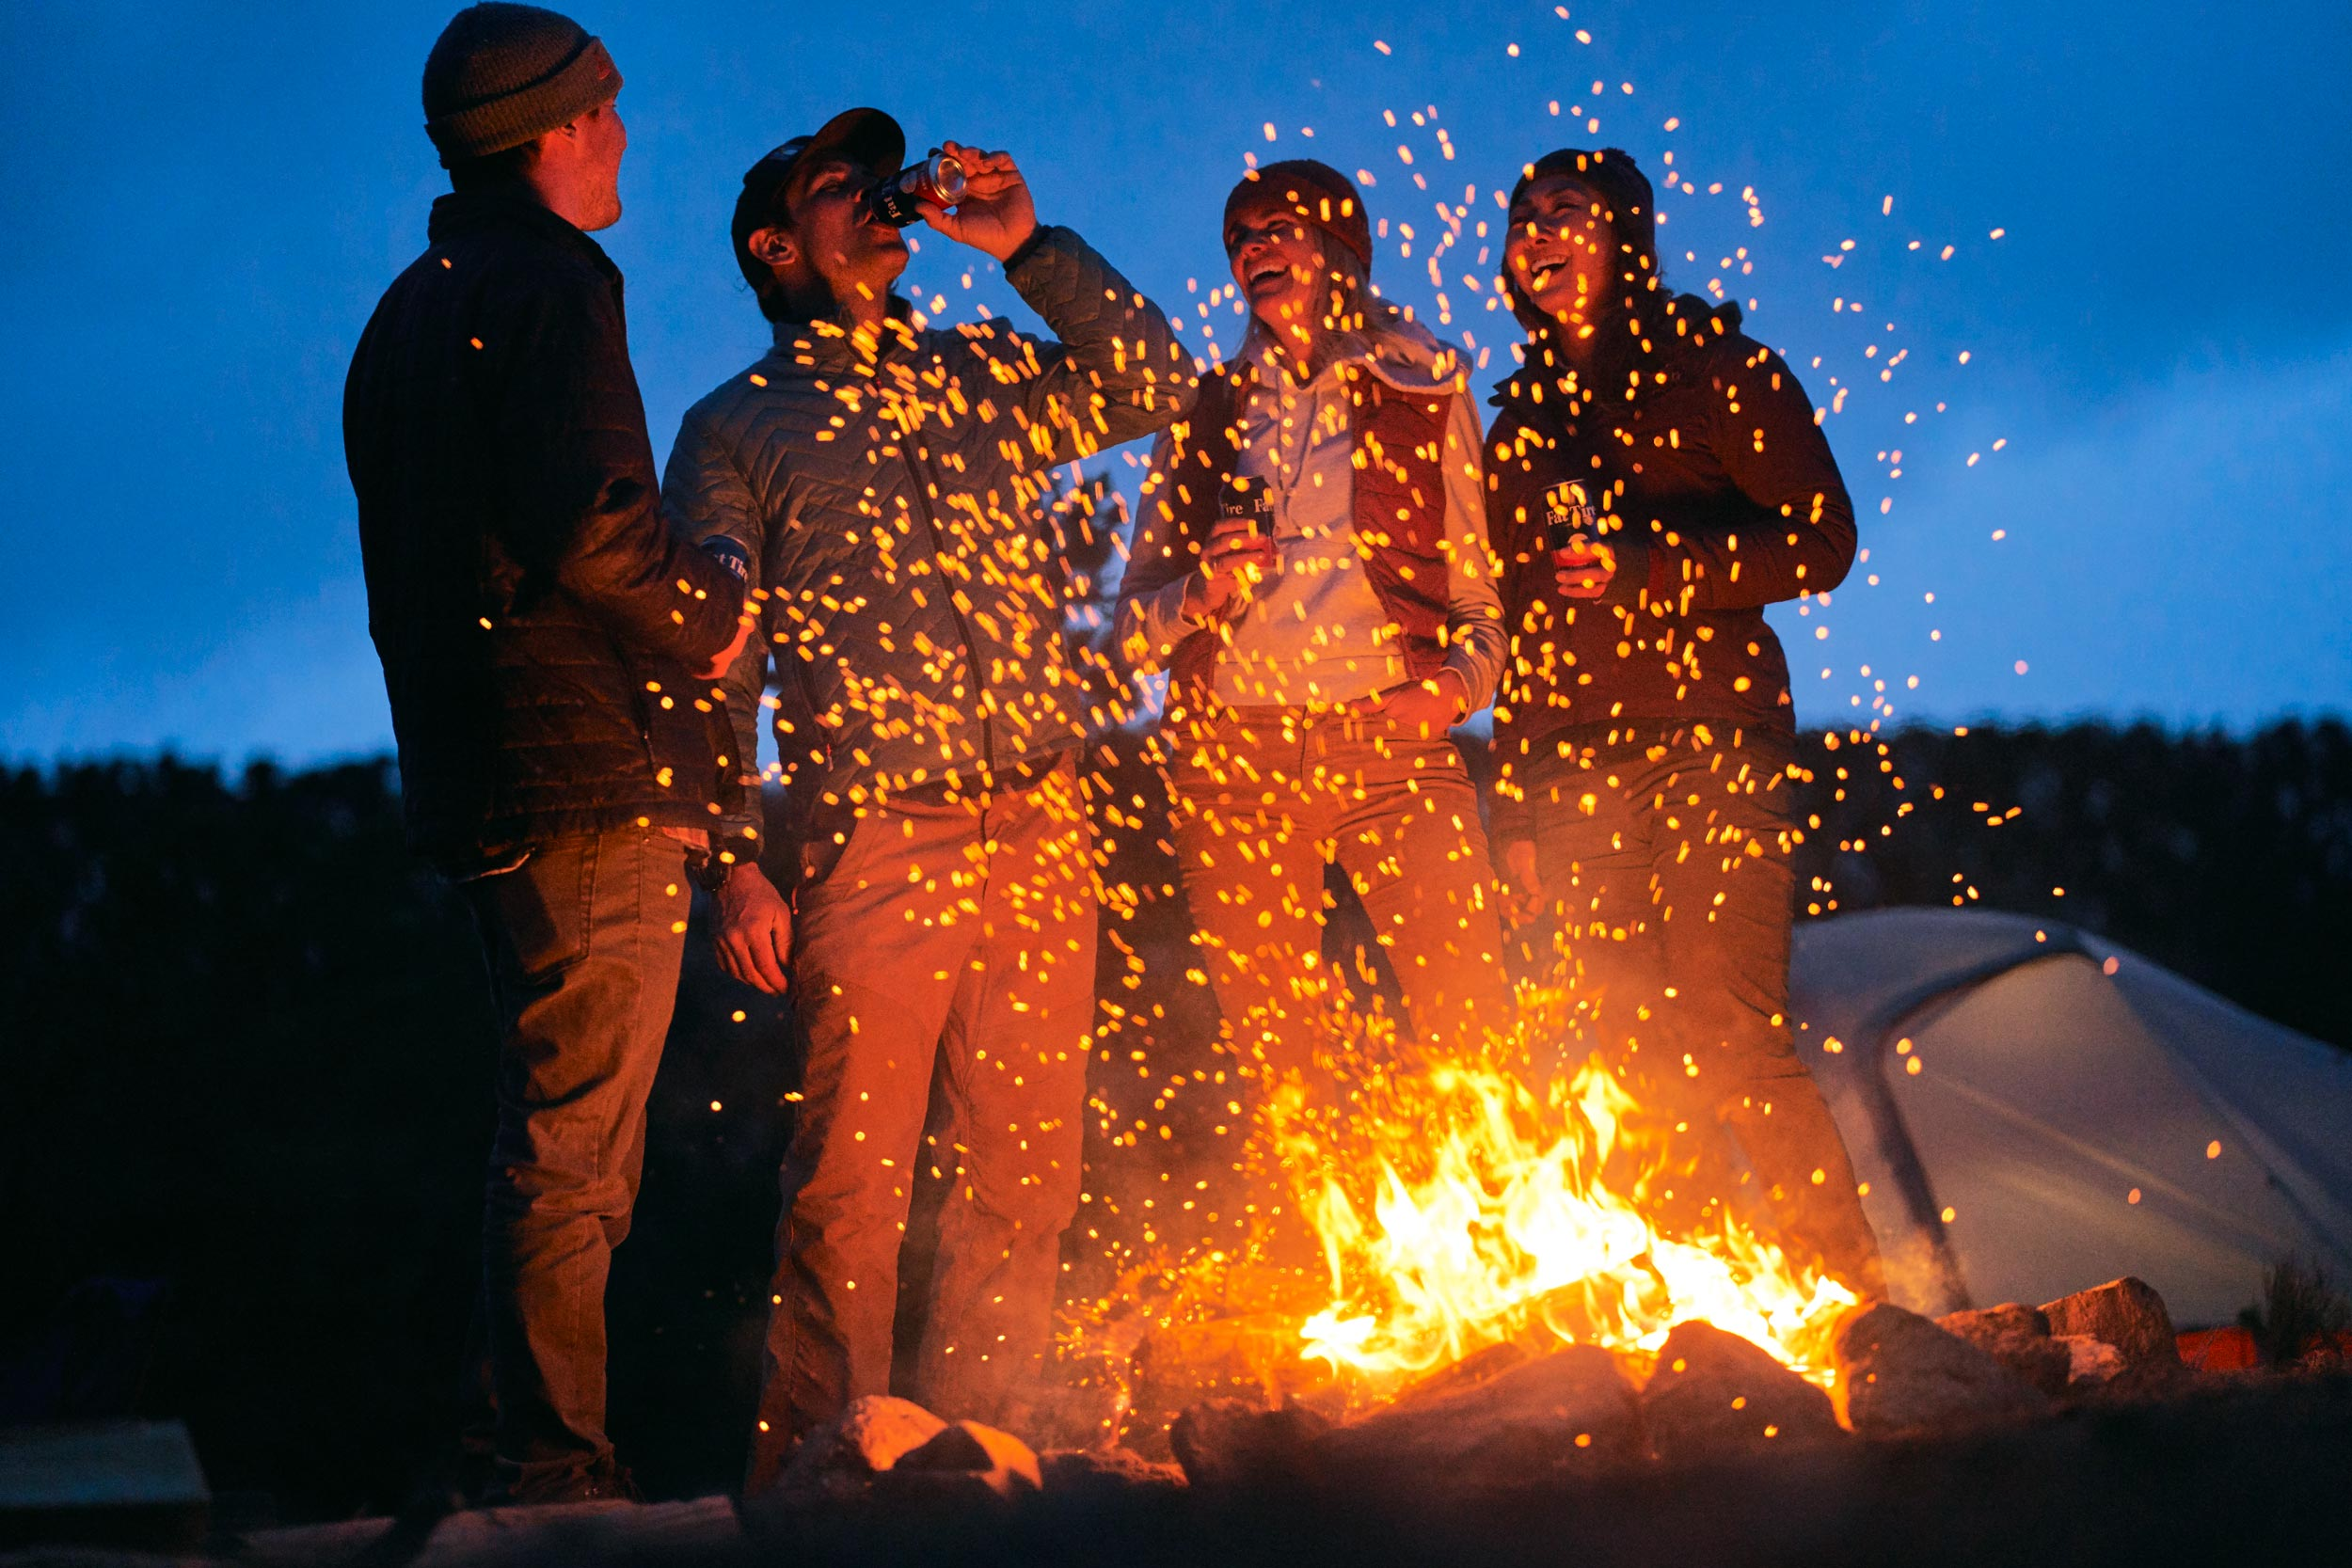 Andrew Maguire photographs friends around a campfire for a Fat Tire campaign in Colorado for New Belgium Brewing.